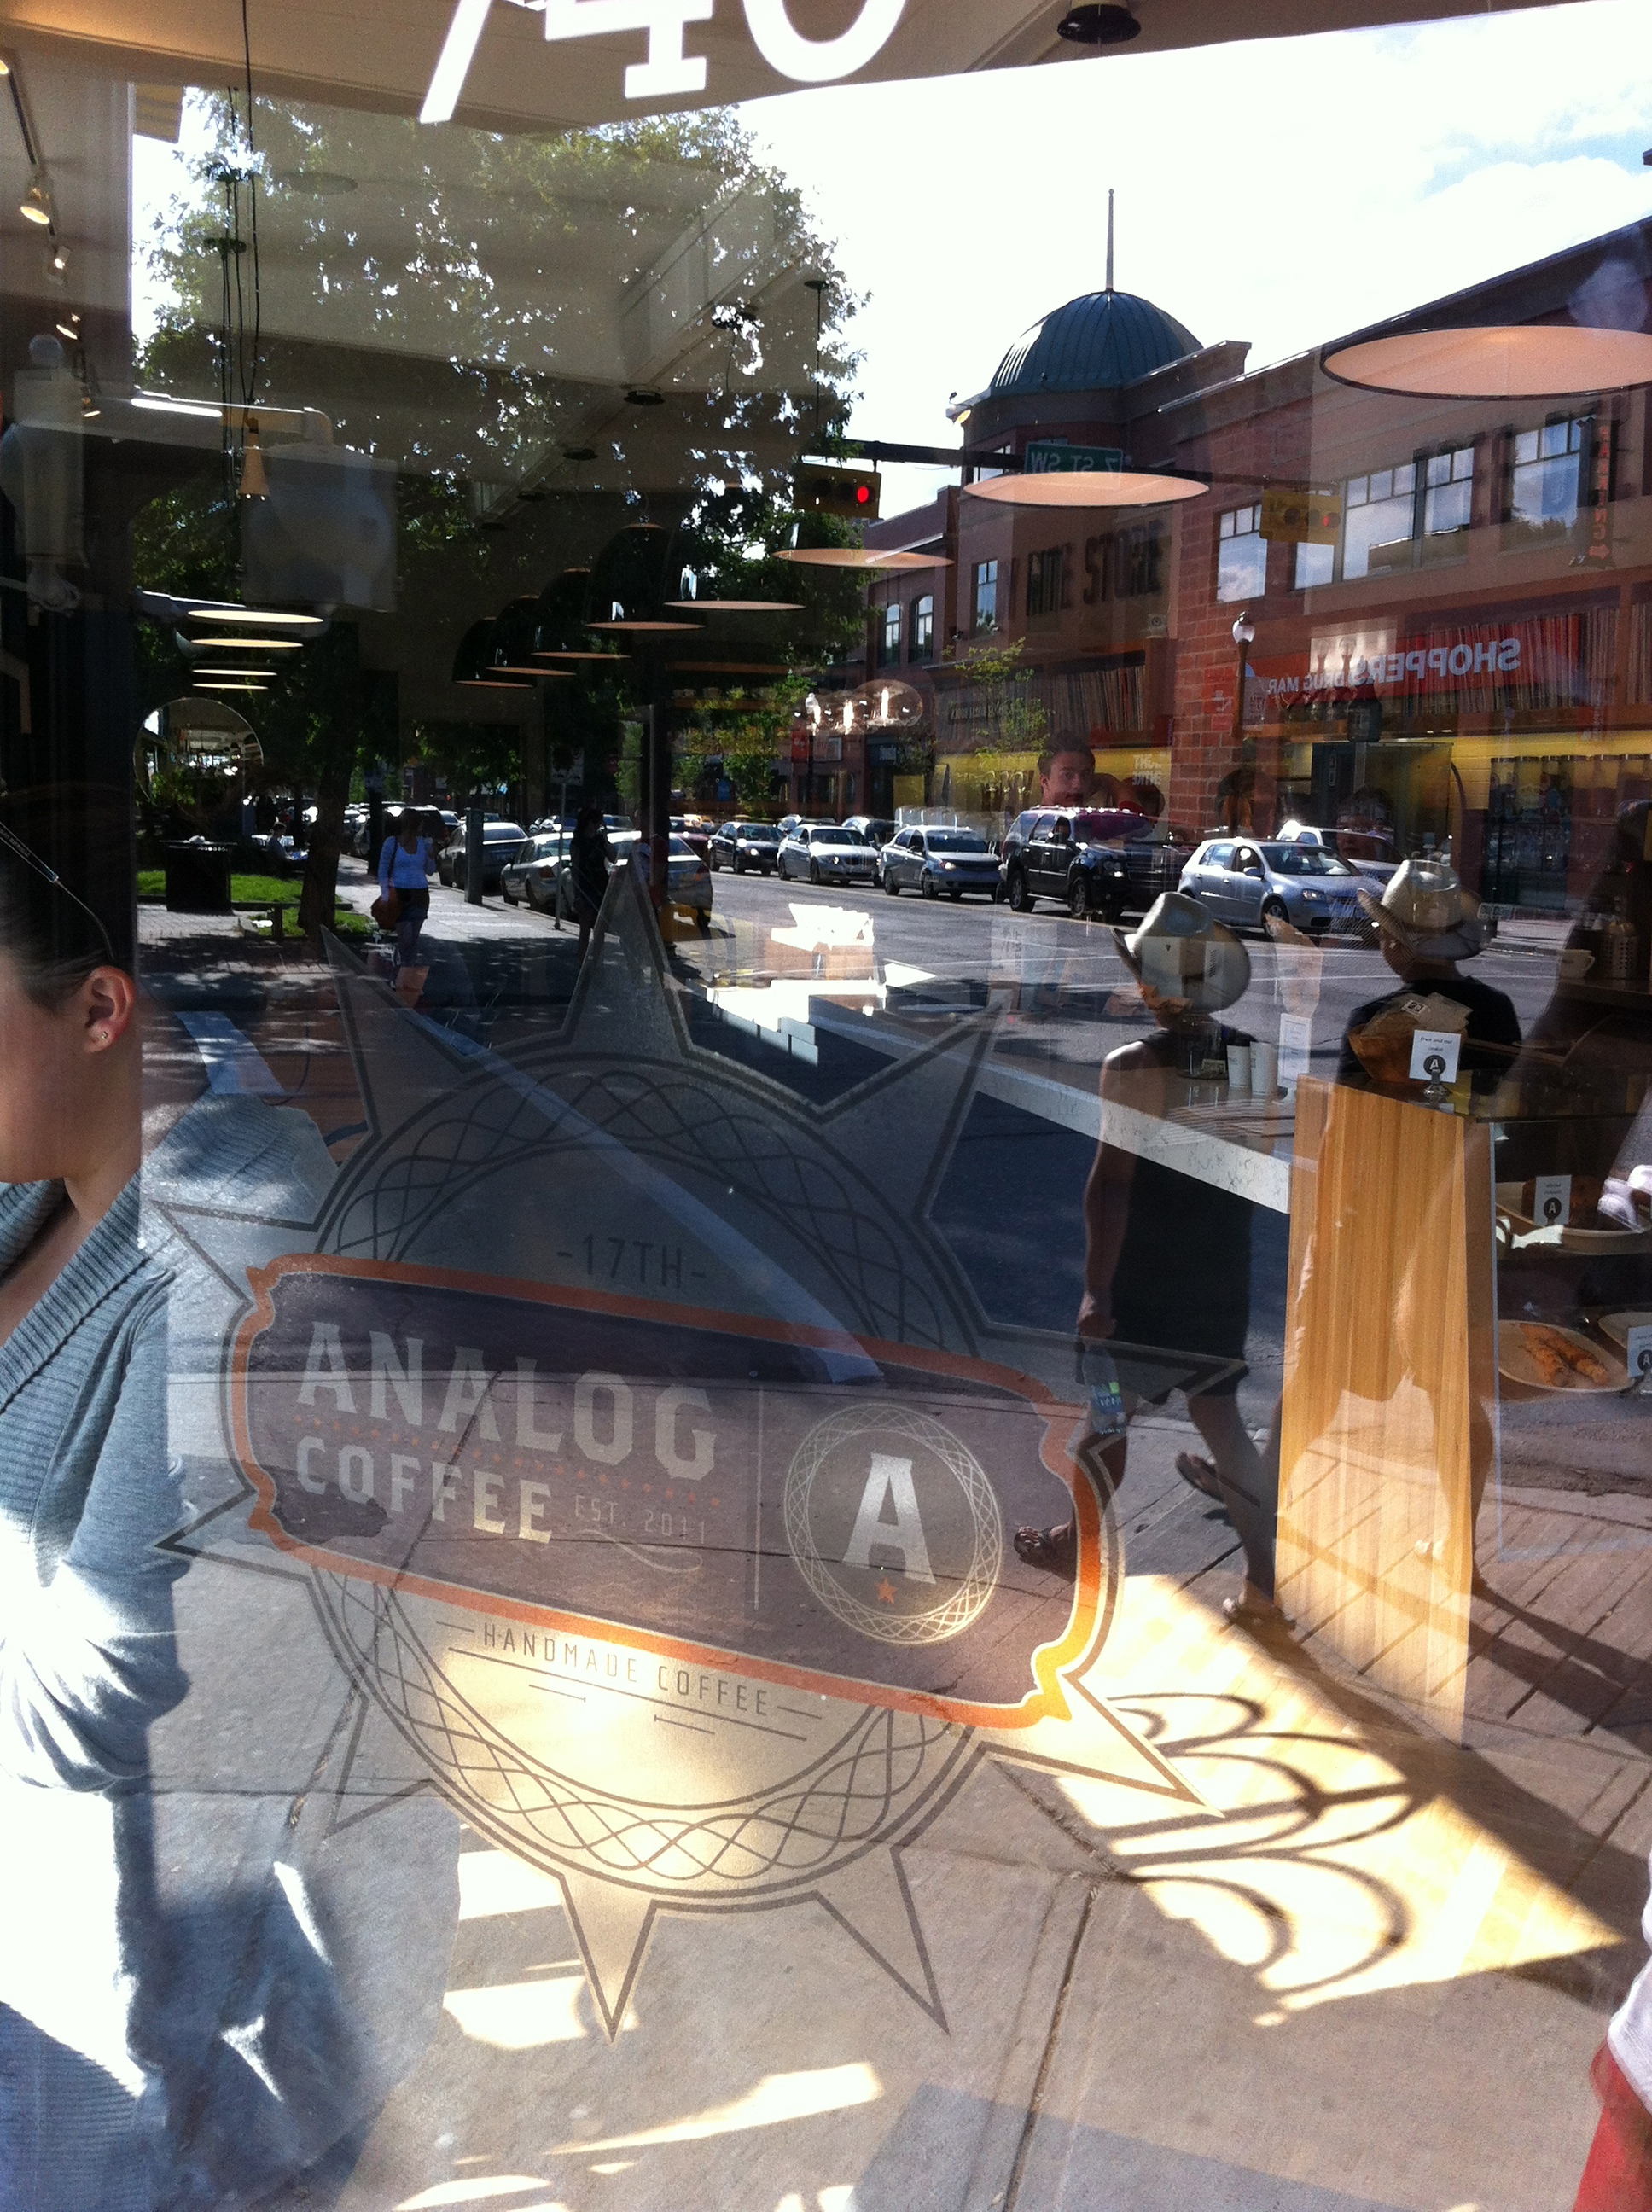 Analog Coffee has great windows both from the inside and the outside.